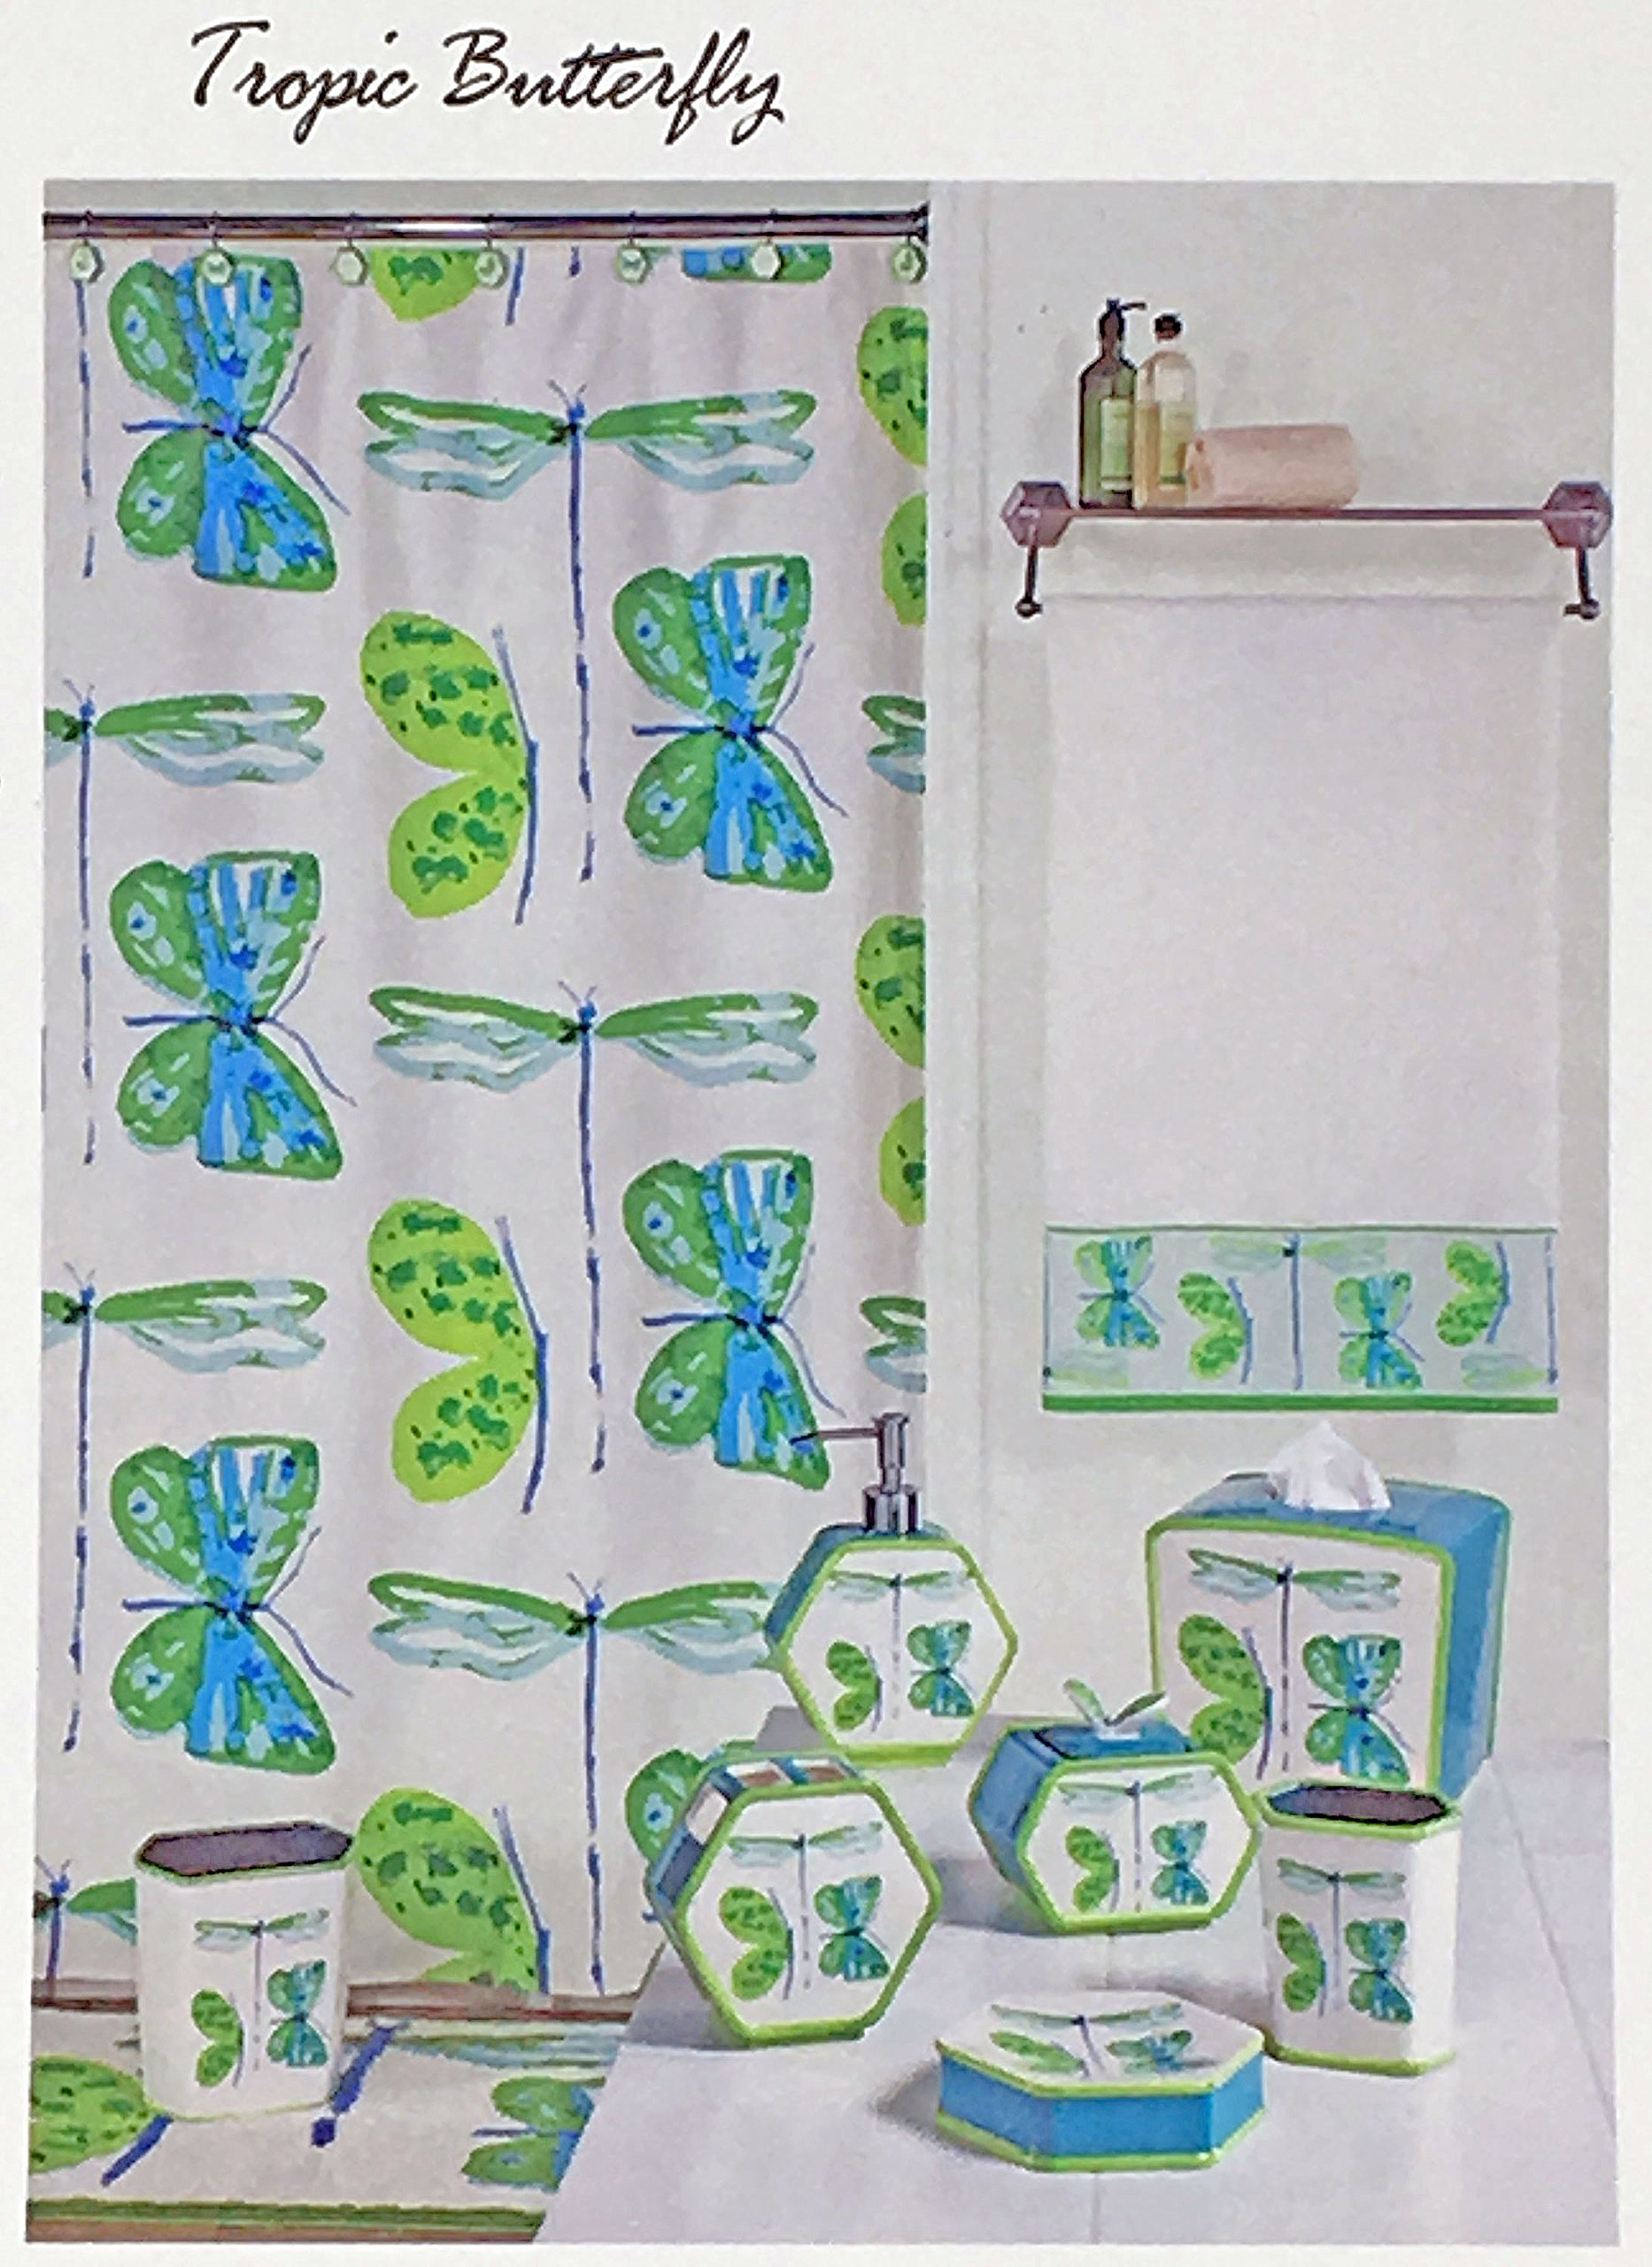 Tropic Butterfly Bath Collection by Vera